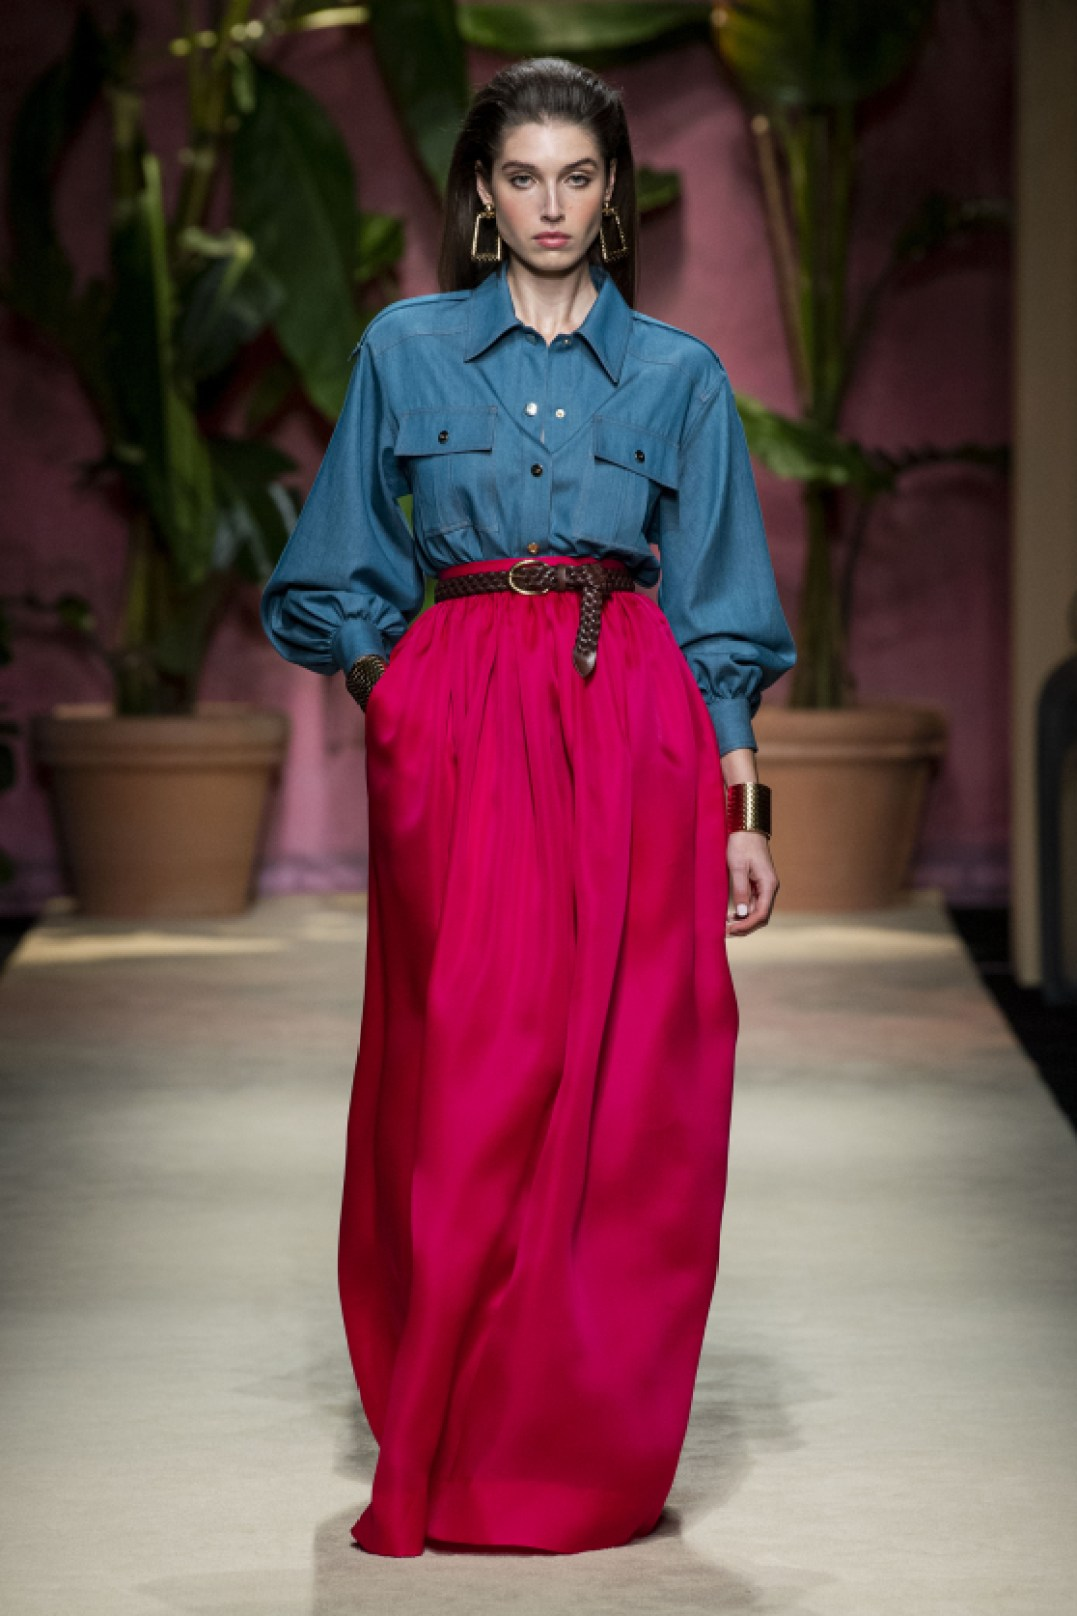 Elegant Vacation Outfits You Need – A Look into Luisa Spagnoli's Spring-Summer 2020 Collection